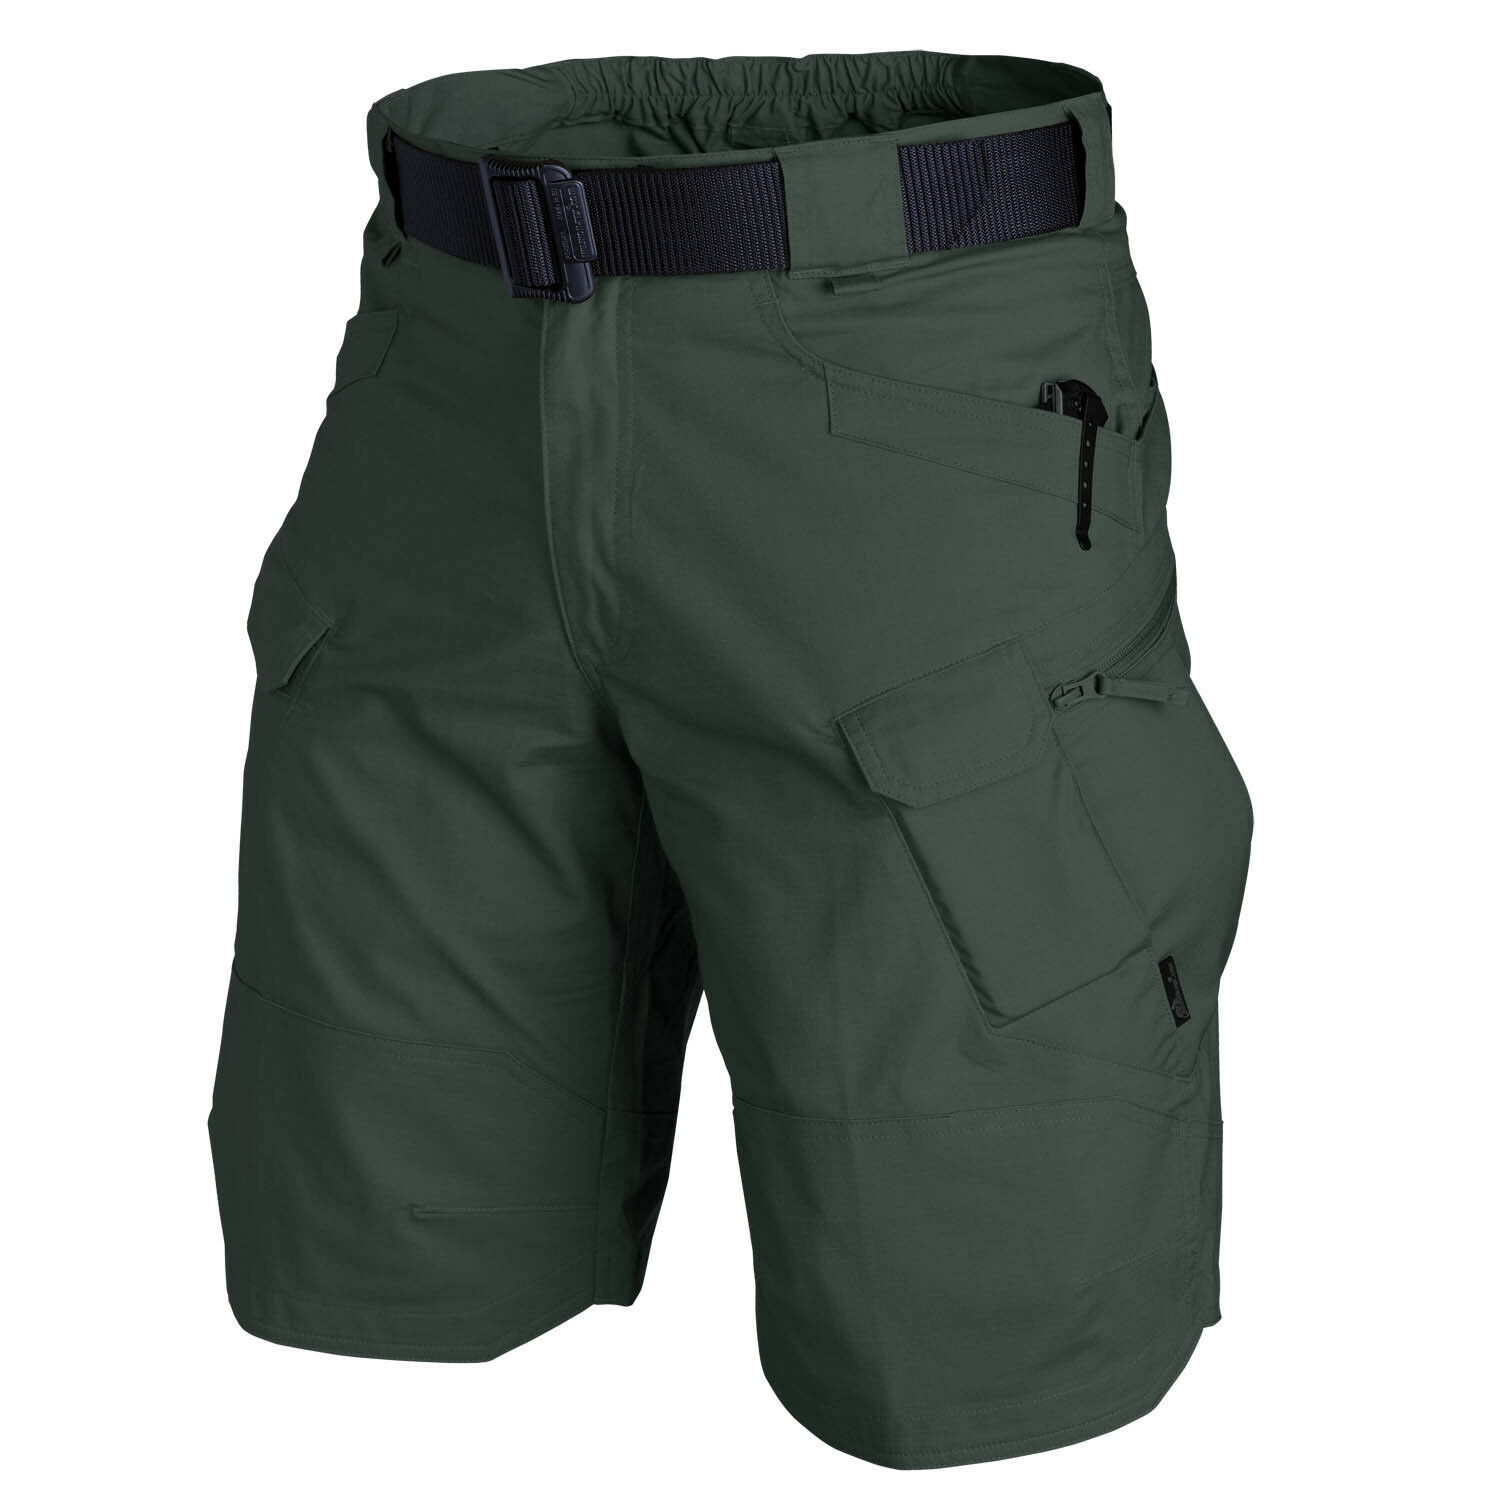 HELIKON Hose TEX UTP URBAN TACTICAL CARGO SHORTS PANTS Hose HELIKON kurz Jungle Grün Small d33929